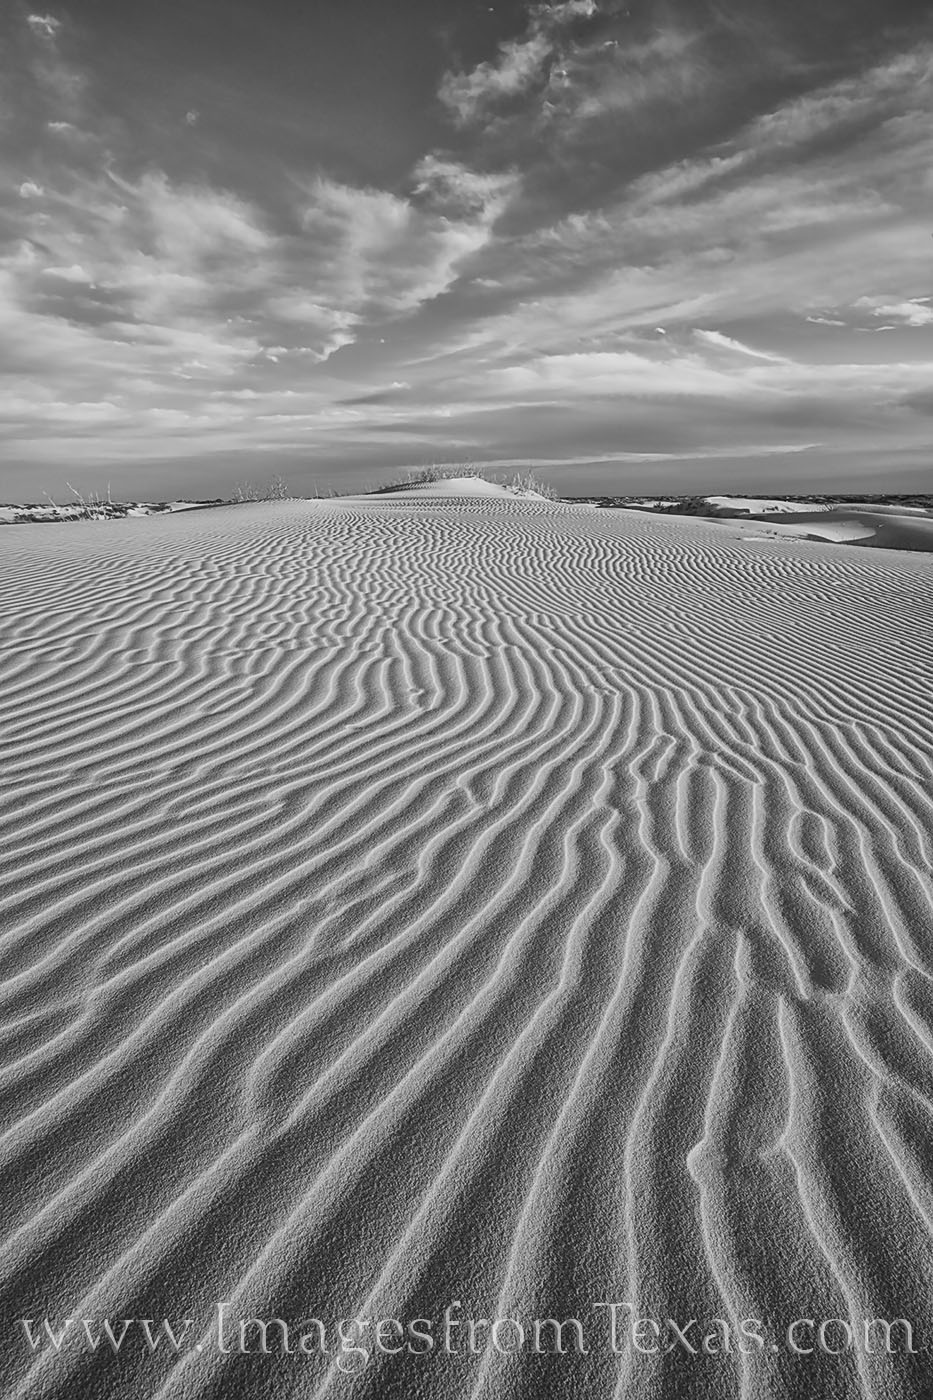 monahans, sand dunes, sandhills, sandhills state park, black and white, west texas, sand, dunes, photo